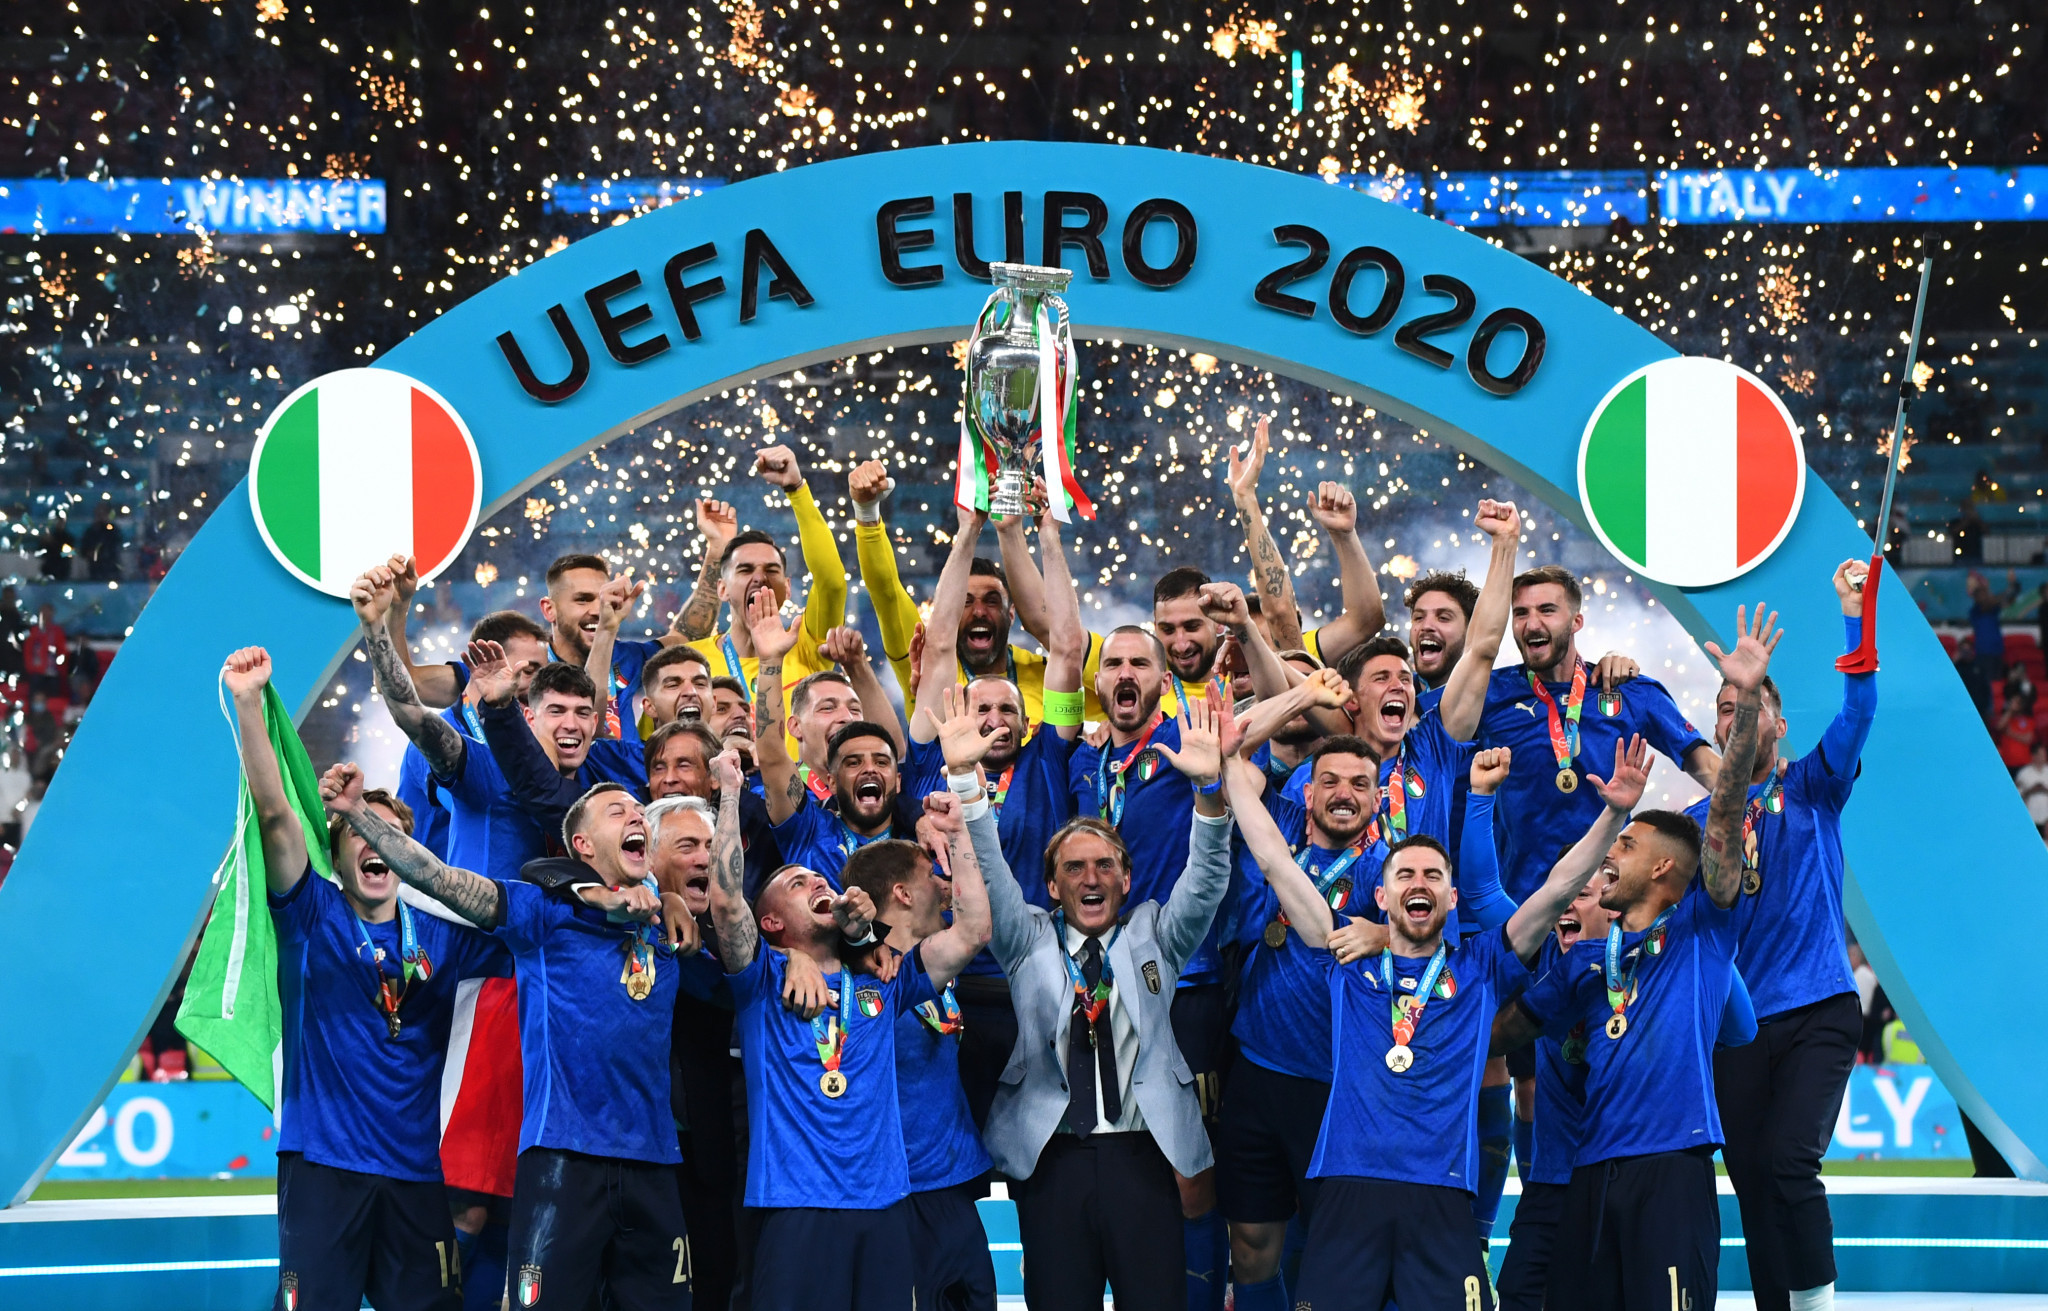 Italy celebrate winning UEFA Euro 2020 on penalties after the match against England had finished 1-1 after extra time ©Getty Images